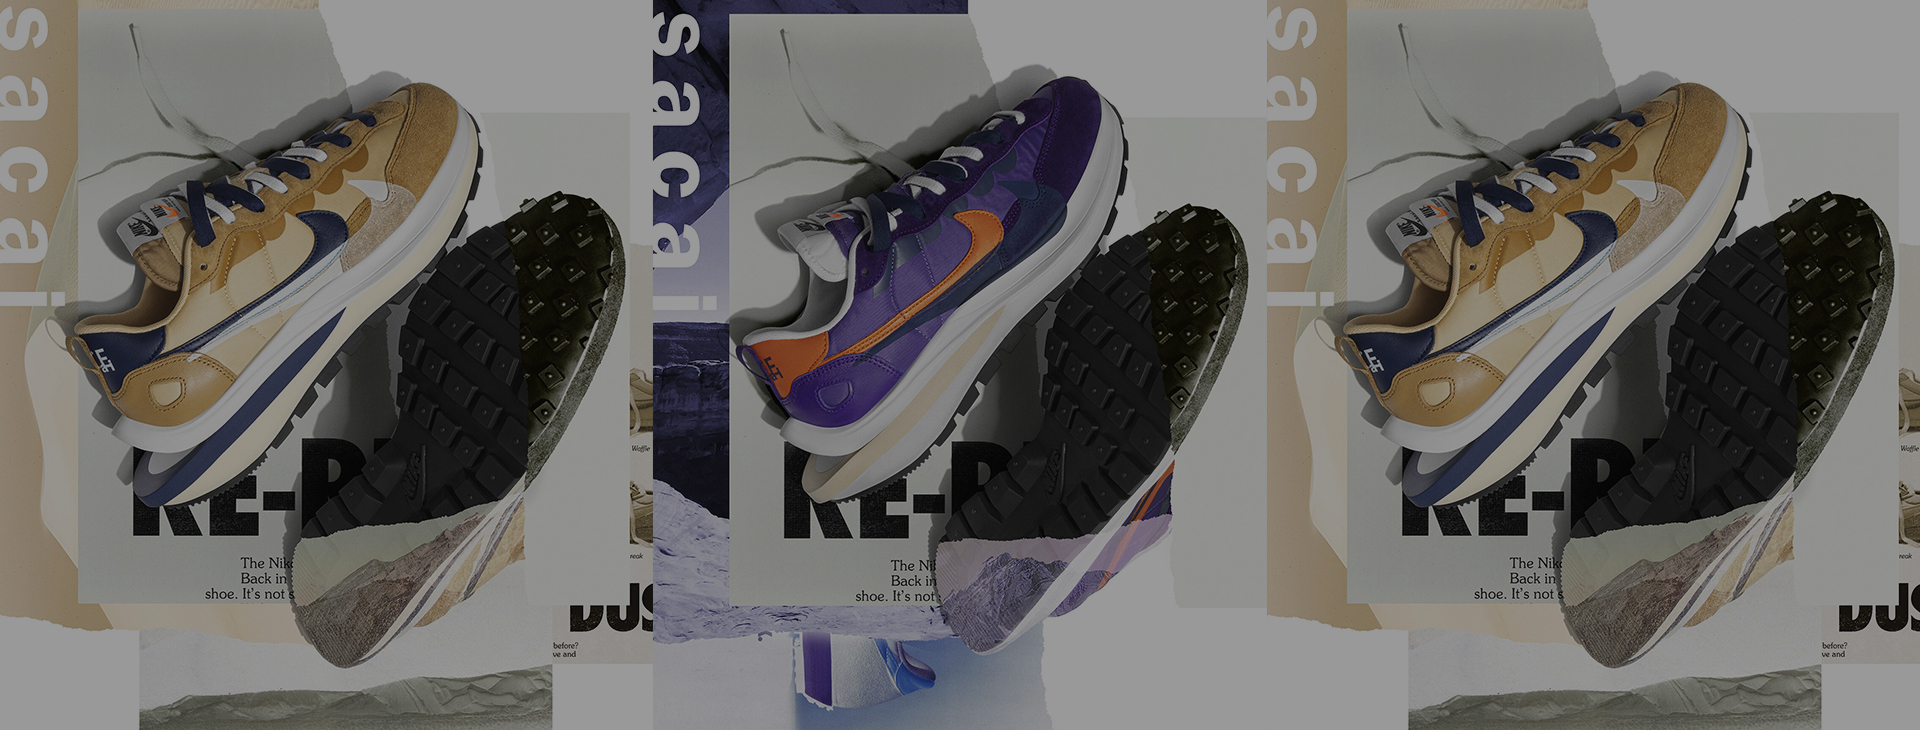 Dark Iris or Sesame? Everything about the Nike x Sacai collab will make you wake up early.